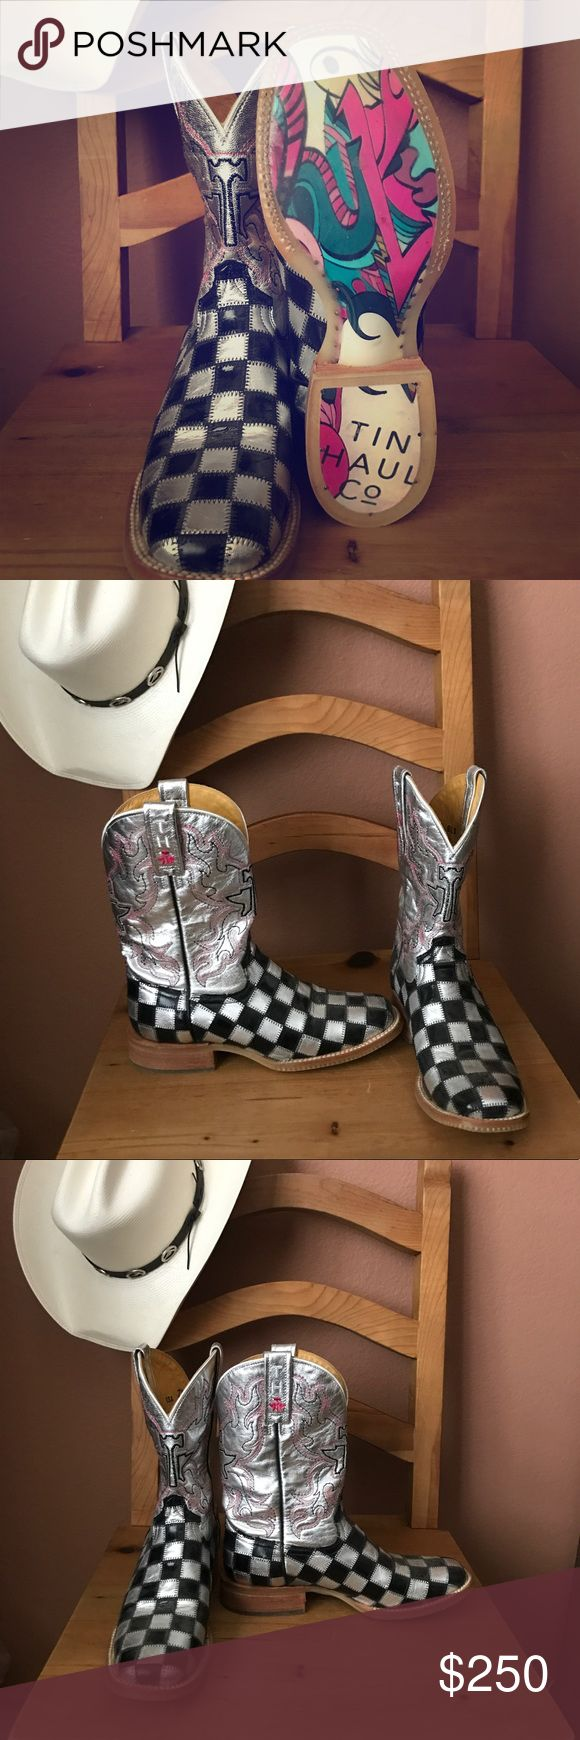 Tin Haul Co. Silver & Black Women's Boots Size 7.5 Brand New, never worn!  Unique black and silver checkered women's square toe cowboy boots by Tin Haul Co. Handmade leather boots with rubber sole.  Size 7.5B Tin Haul Co. Shoes Heeled Boots